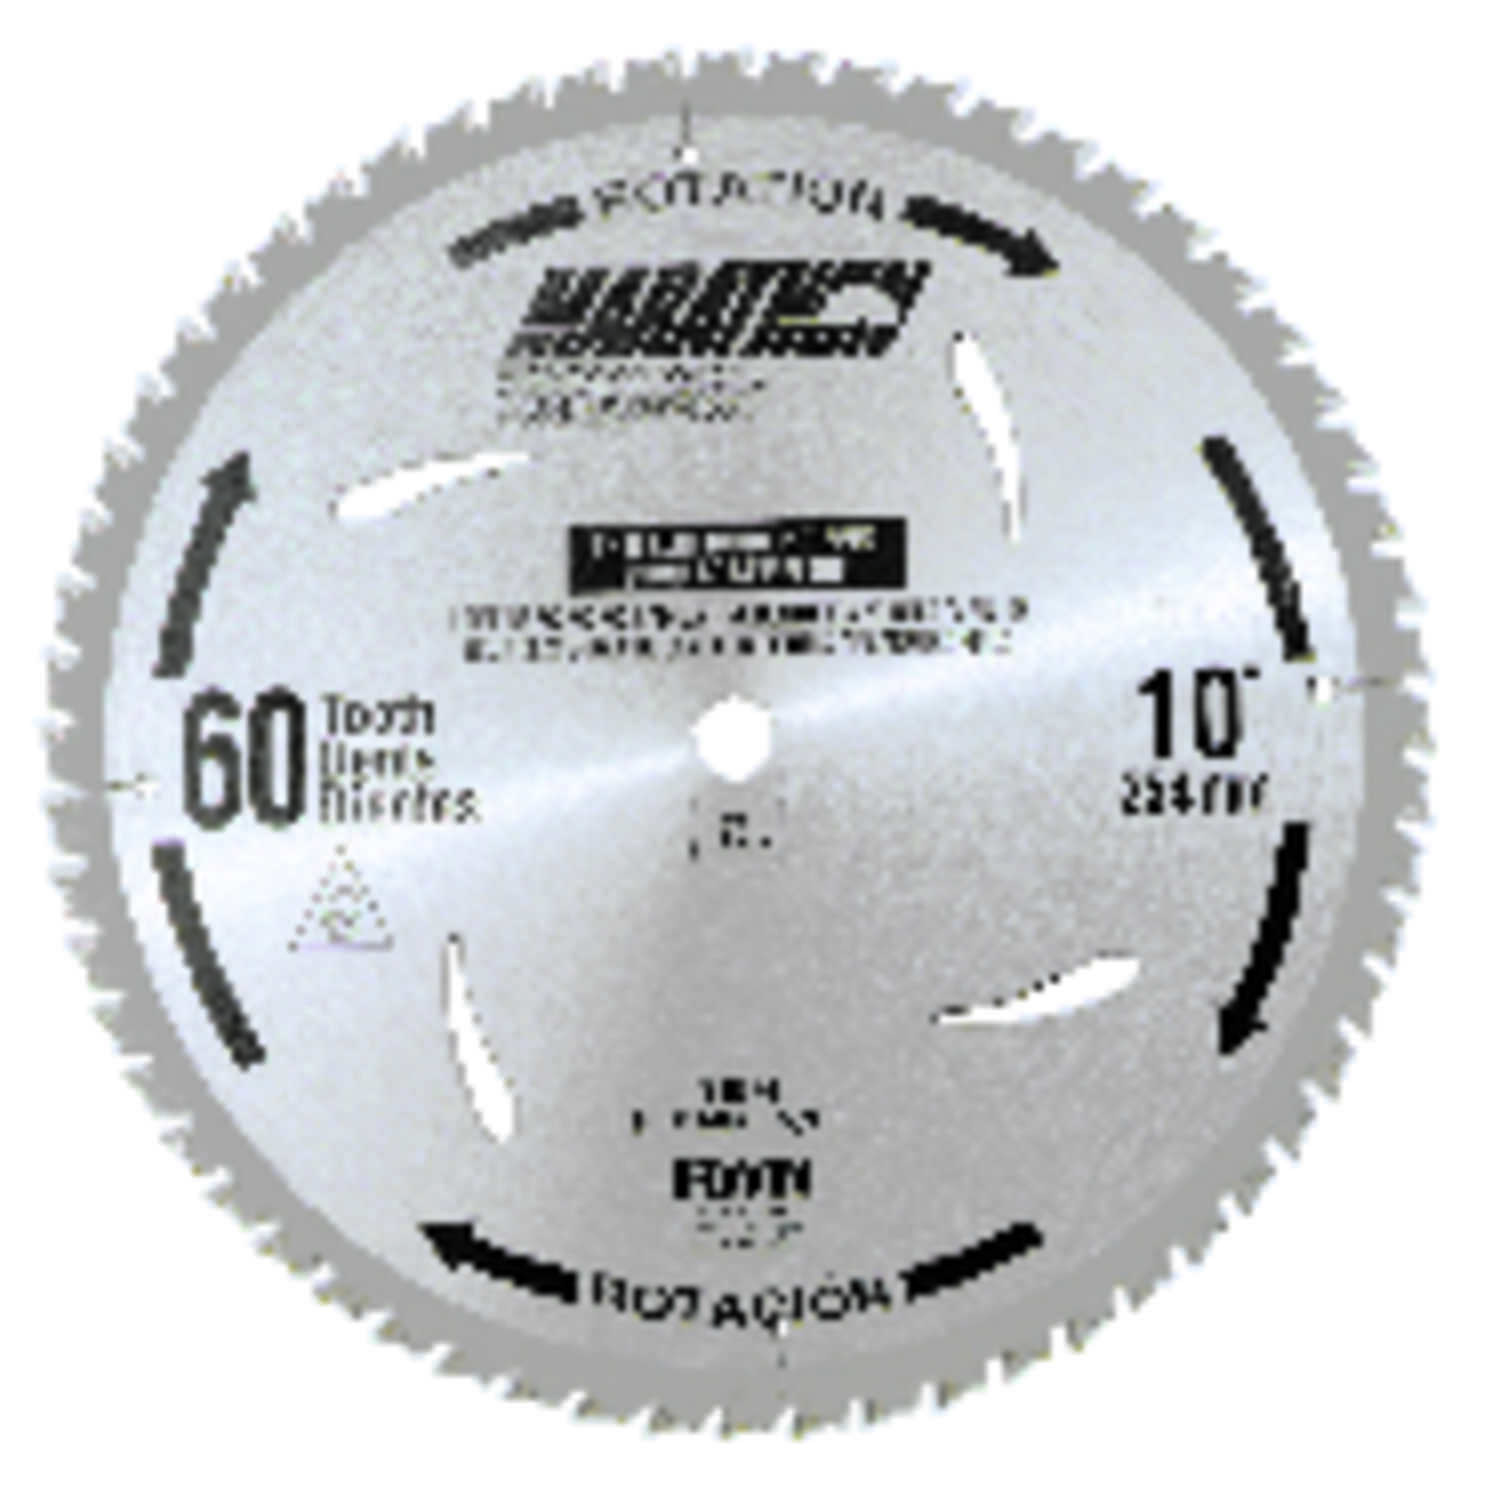 Irwin  Marathon  10 in. Dia. x 5/8 in.  Miter and Table Saw Blade  Carbide  60 teeth 1 pk